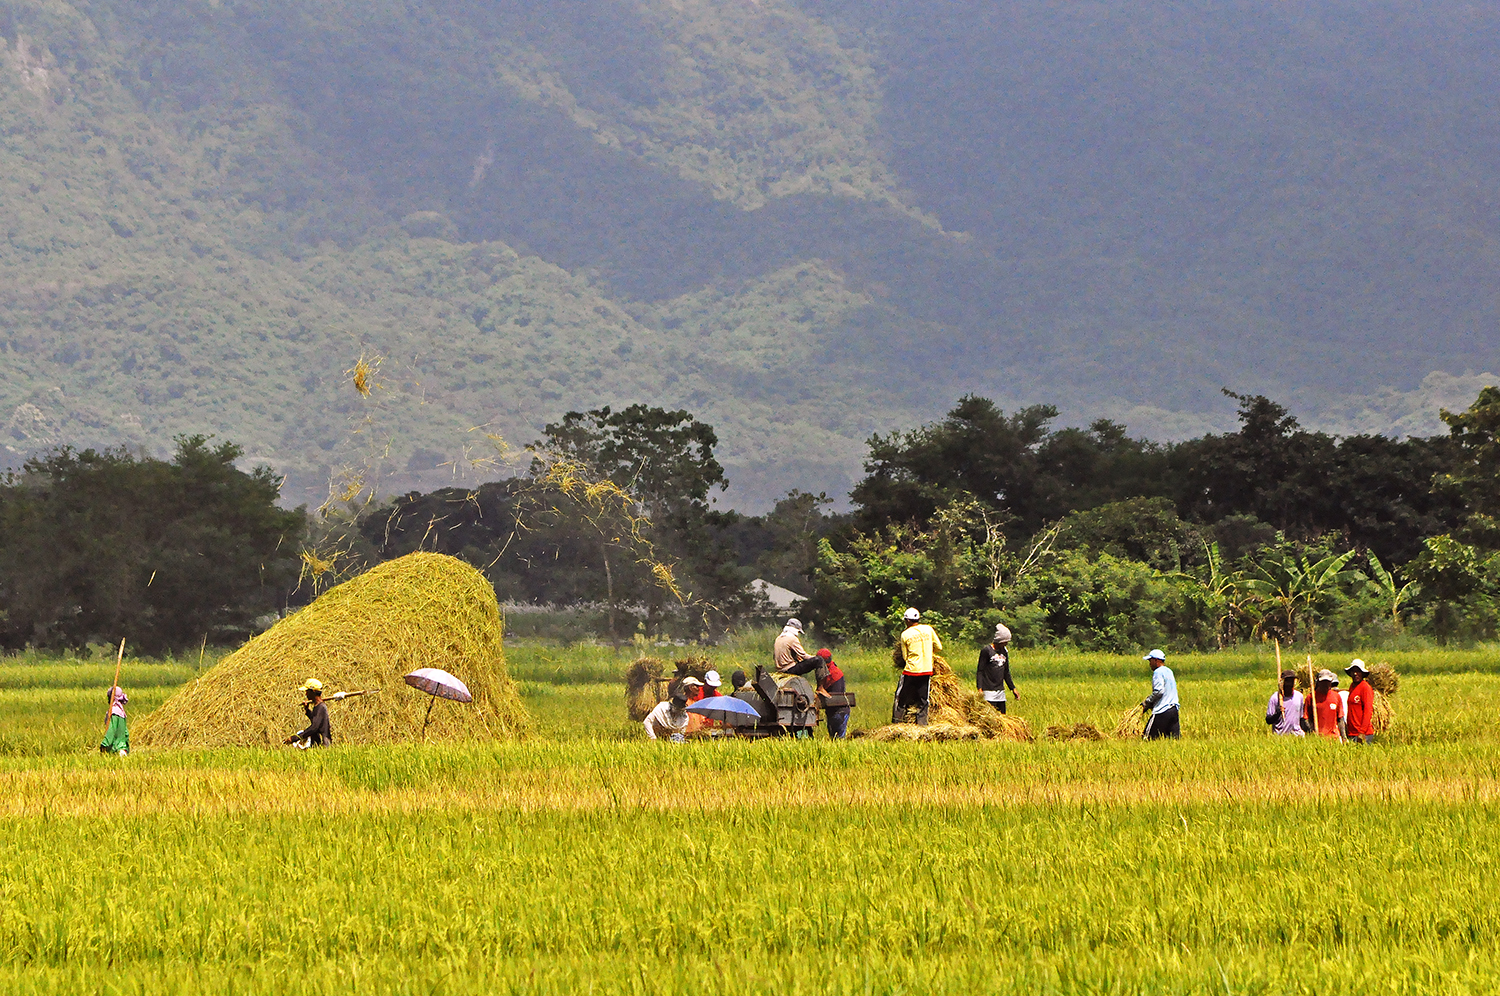 BAYANIHAN FOR THE STAPLE. A community finishes a palay season dafter harvest, taking advantage of the good weather in Pangasinan. Photo by Mau Victa/Rappler